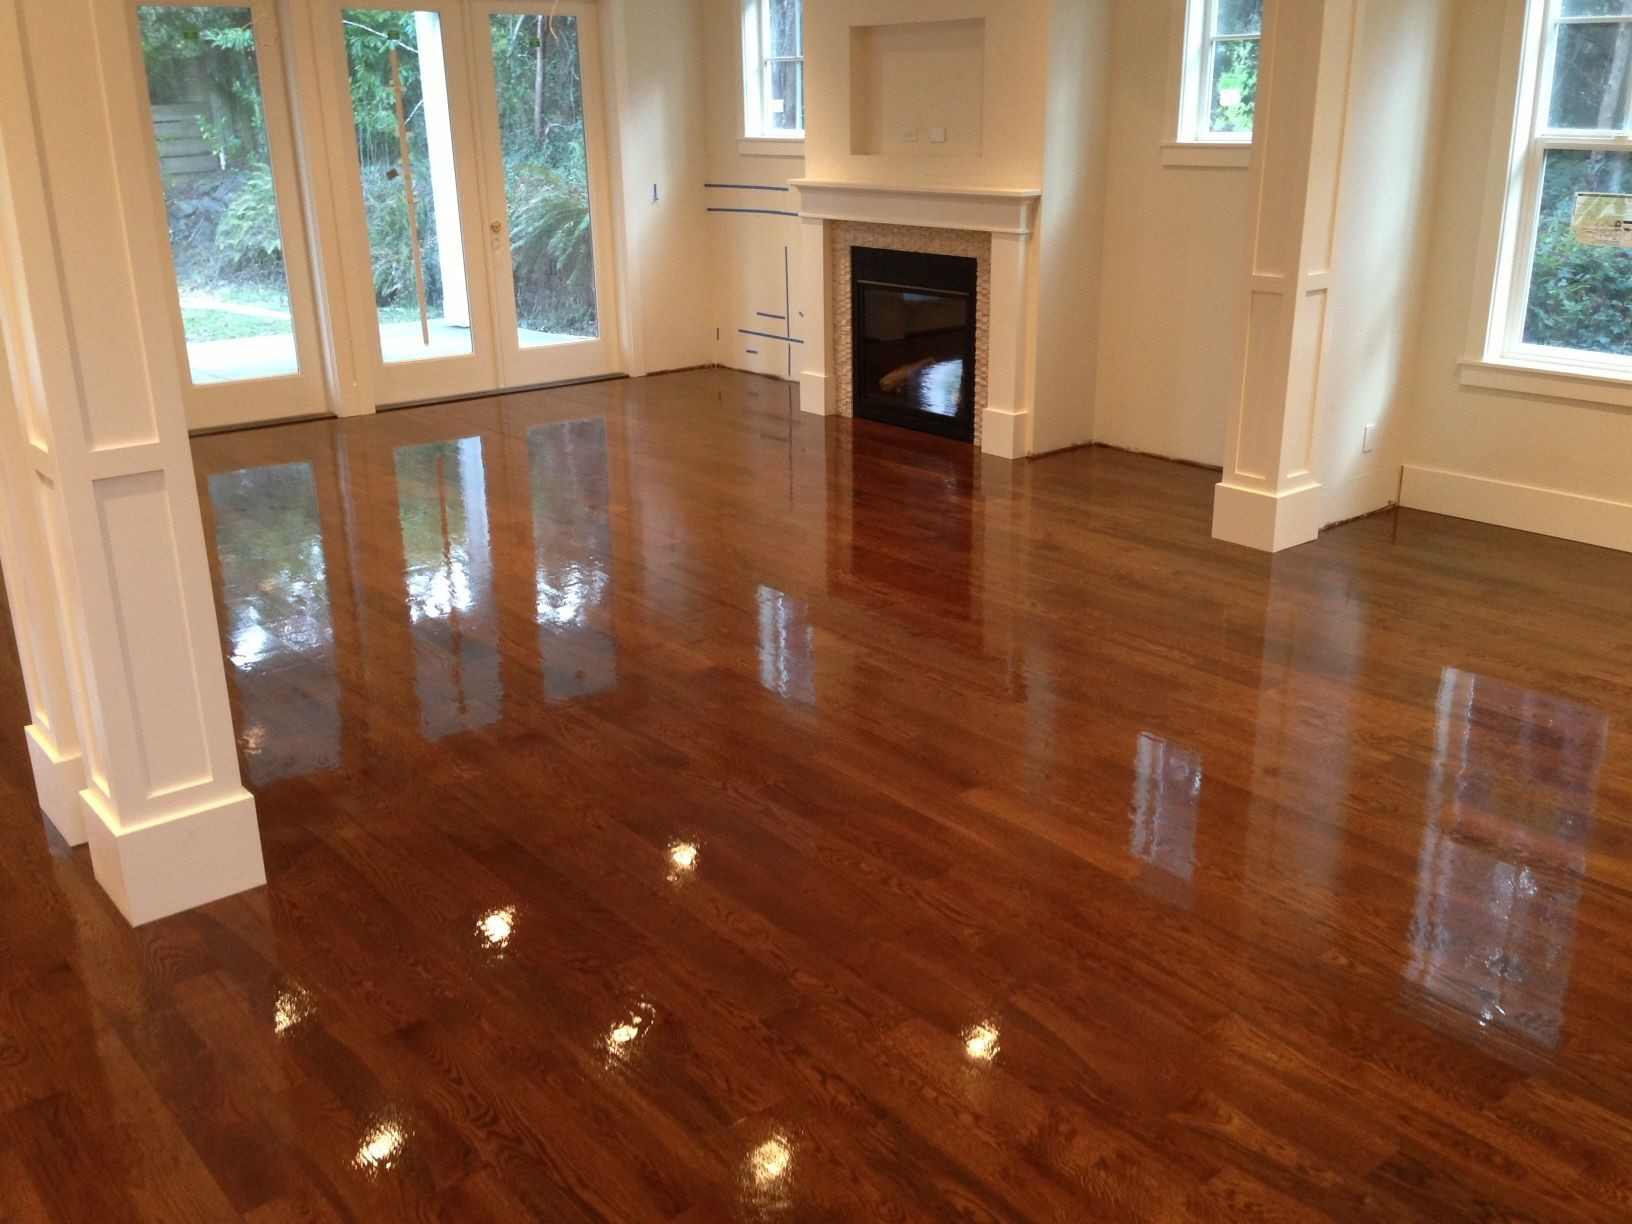 hardwood floor refinishing long island of express flooring has outlets in glendale tucson and all neighboring throughout hardwood floors seattle hardwood floor refinishing and installation seattle tacoma moore floors inc